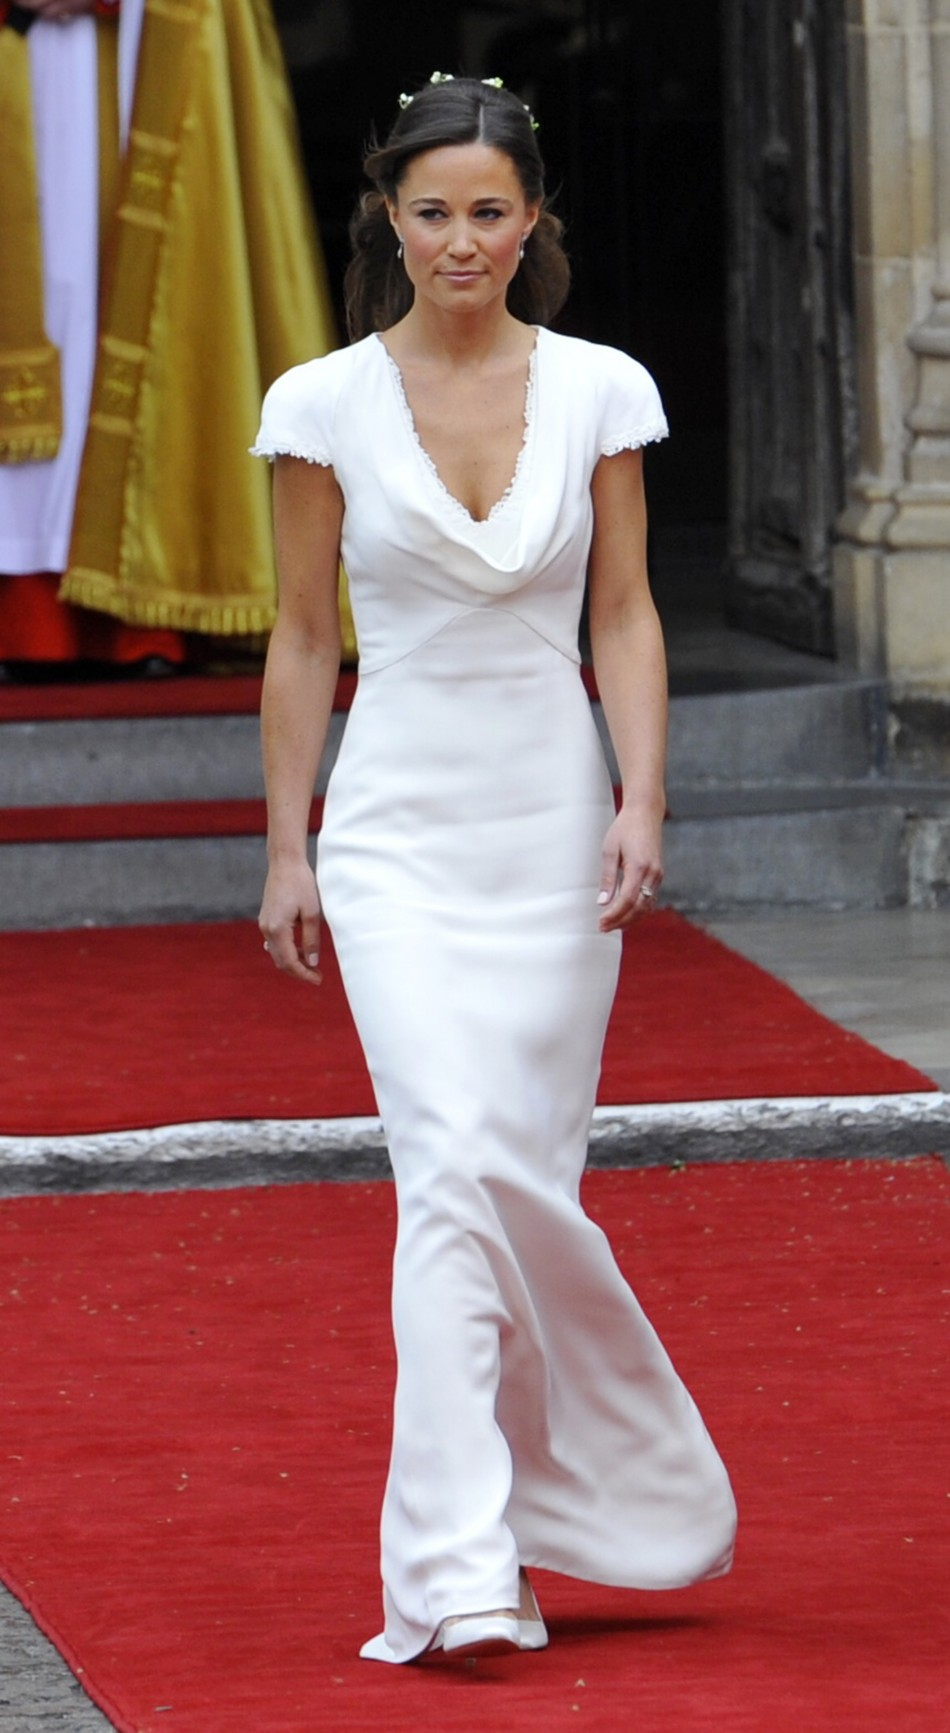 2. Pippa Middleton